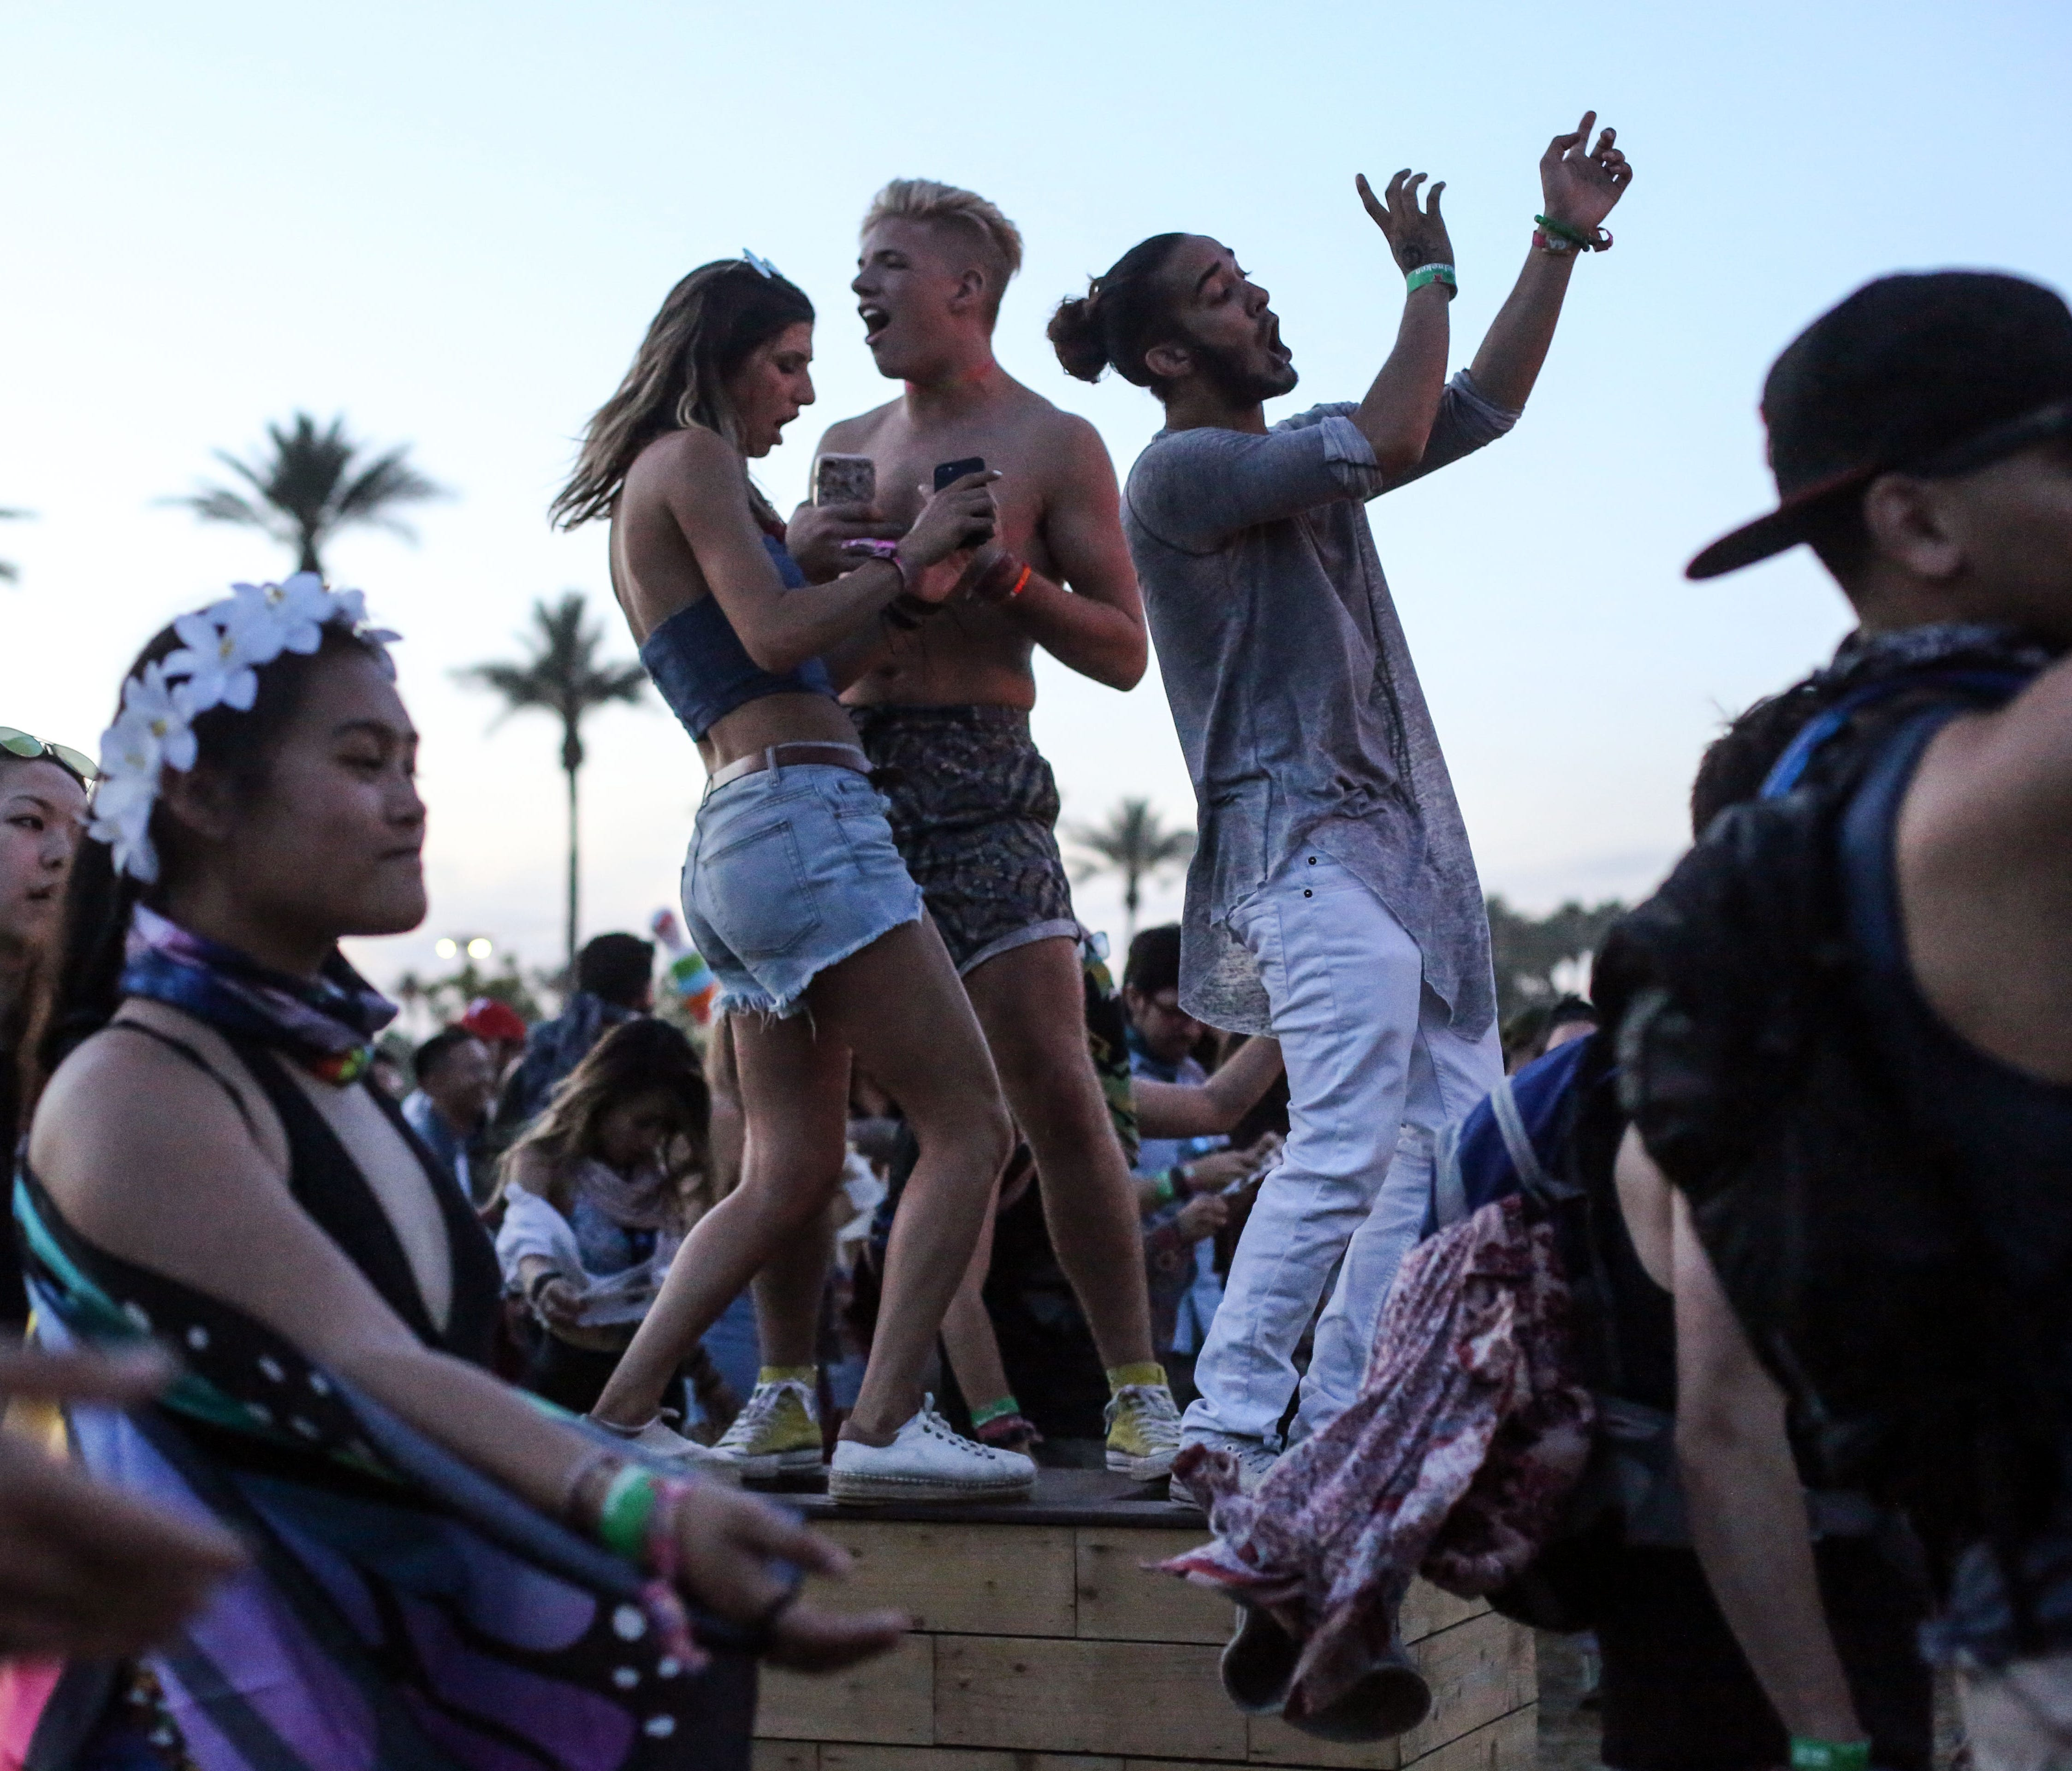 Attendees dance during the Coachella Valley Music and Arts Festival at Empire Polo Club.